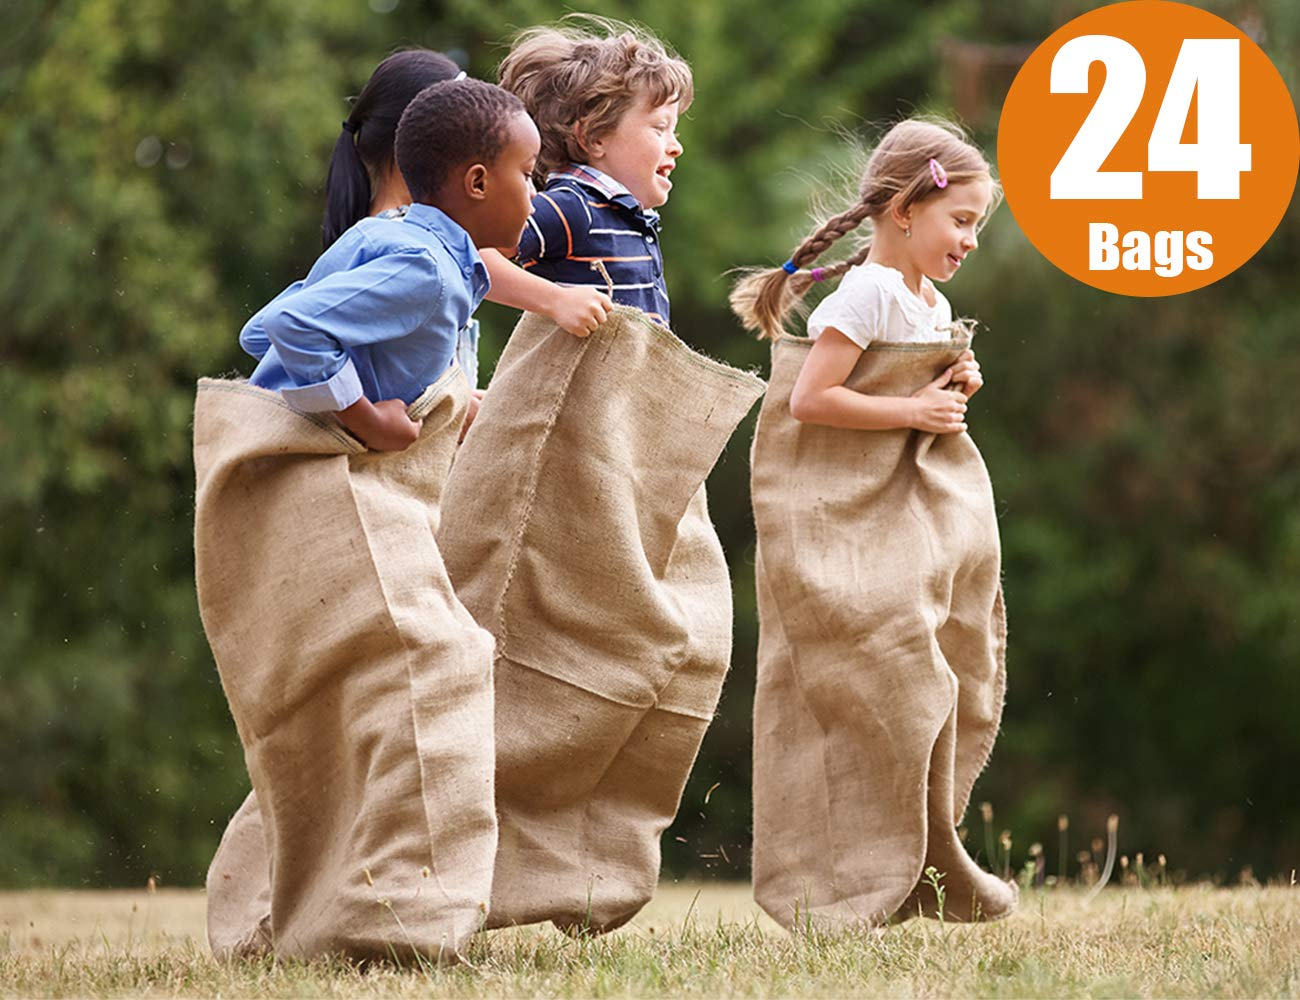 "ToysOpoly #1 Premium Burlap Potato Sack Race Bags 24"" x 40"" (Pack of 24) - of Sturdy Rugged, 100% Natural Eco-Friendly Jute , Perfect Birthday Party Game for Kids & Adults"